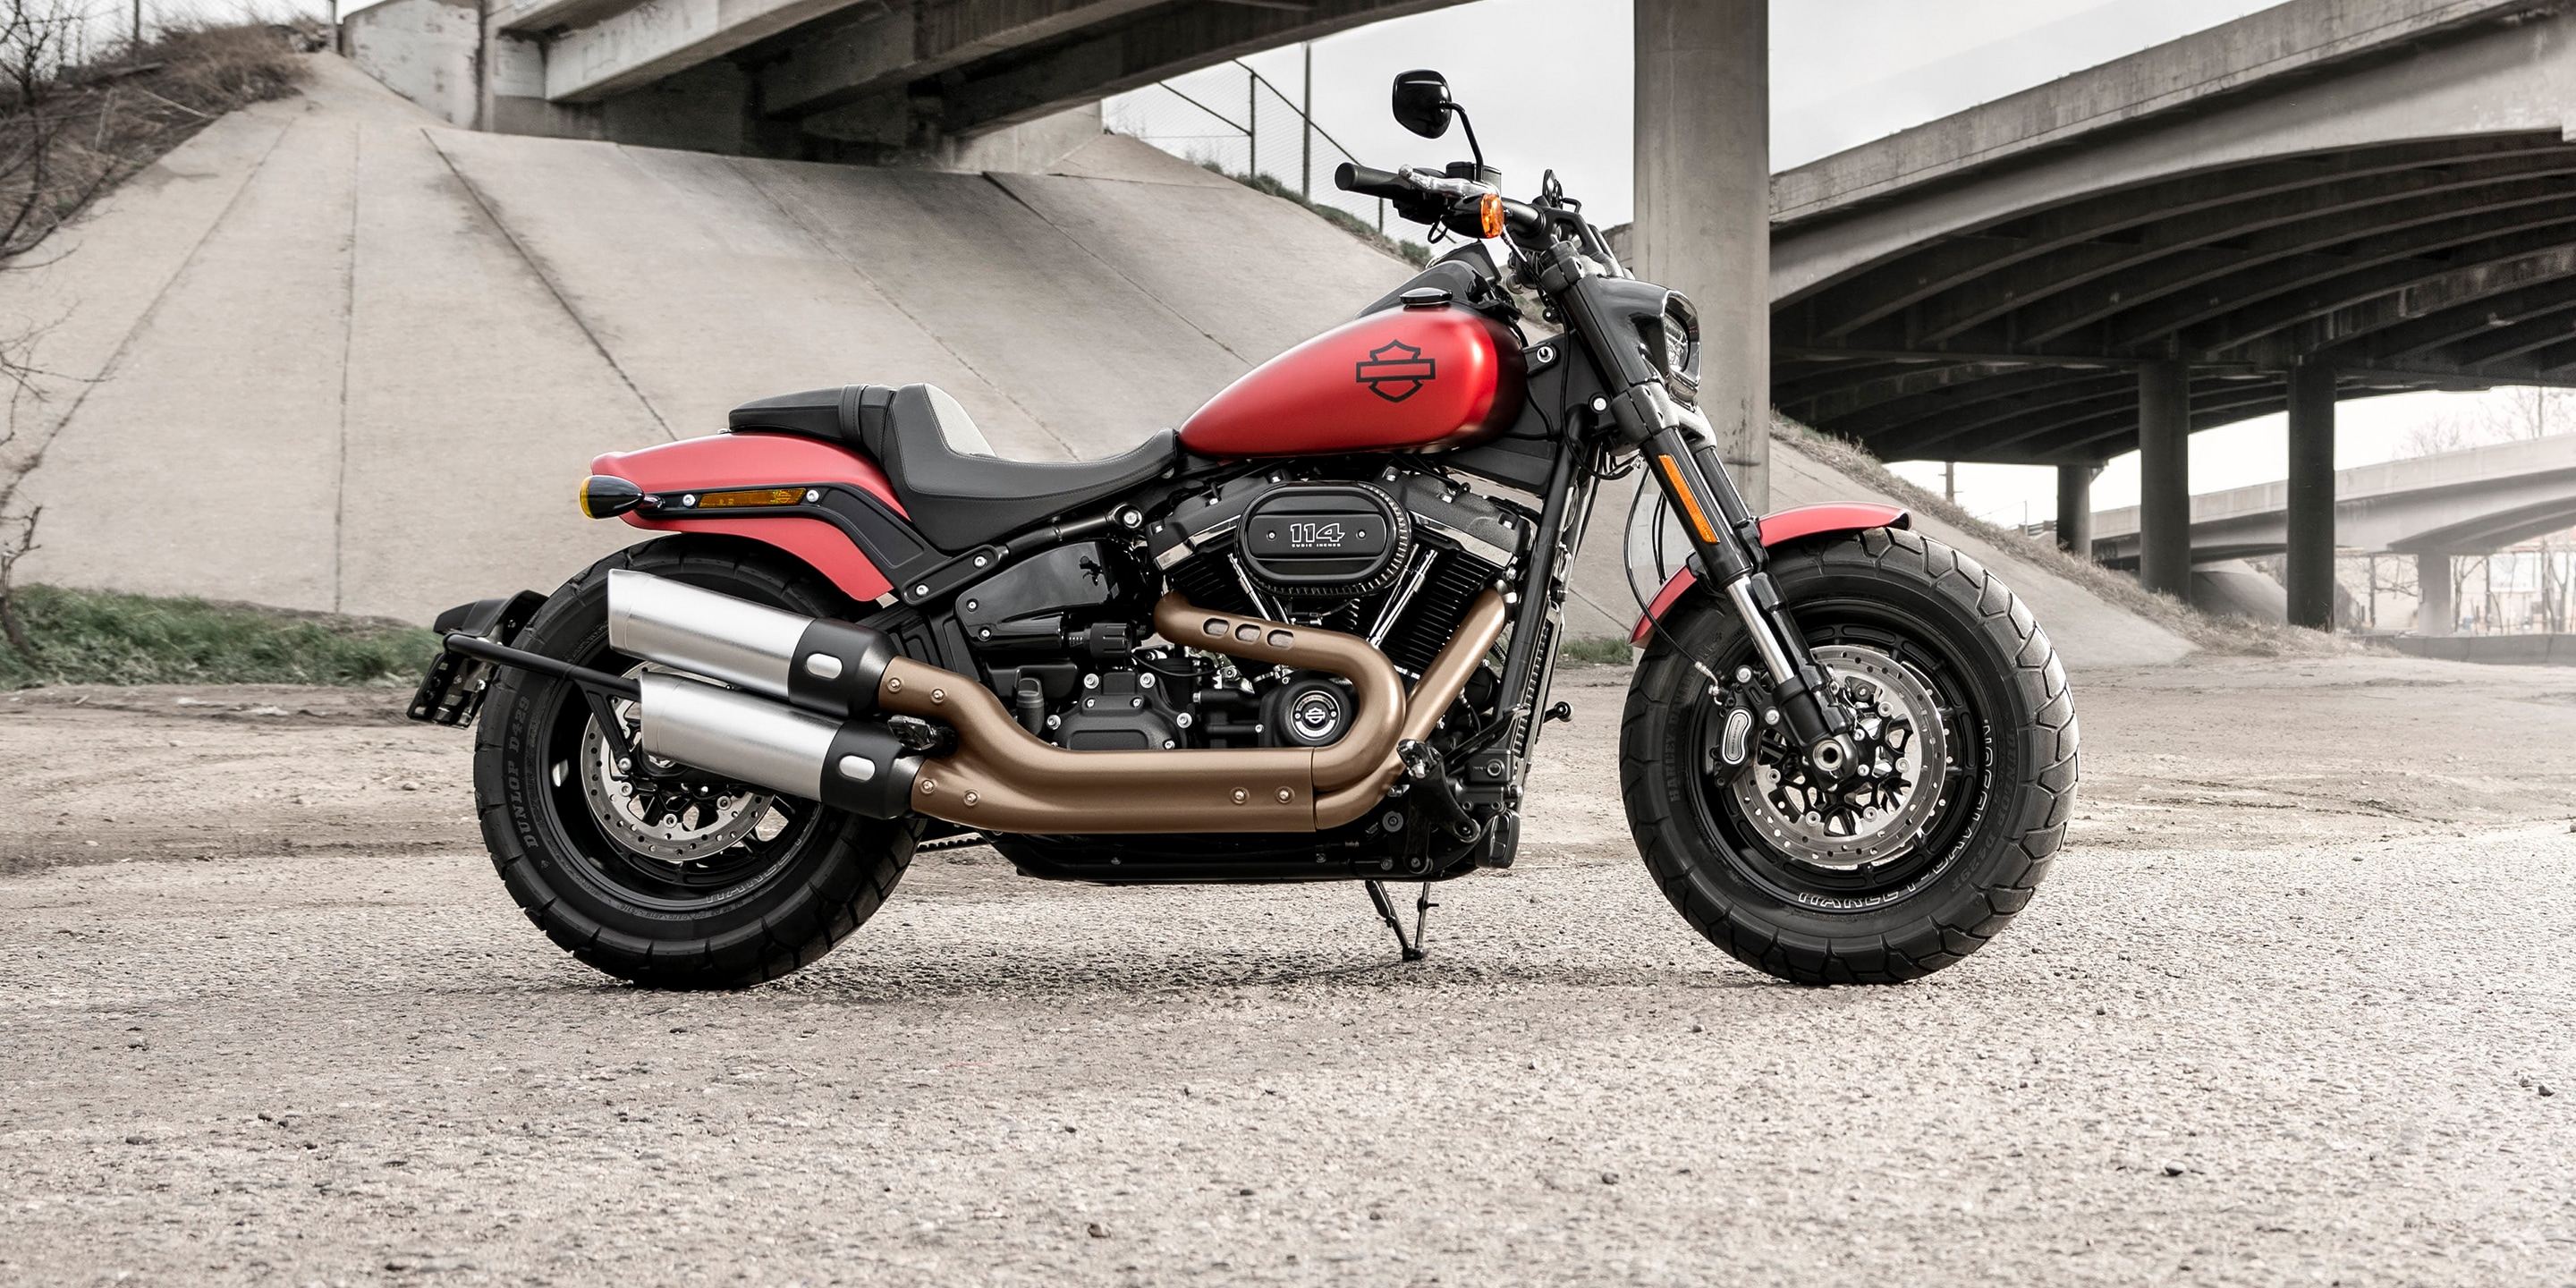 2019 Fat Bob Motorcycle parked outside a warehouse